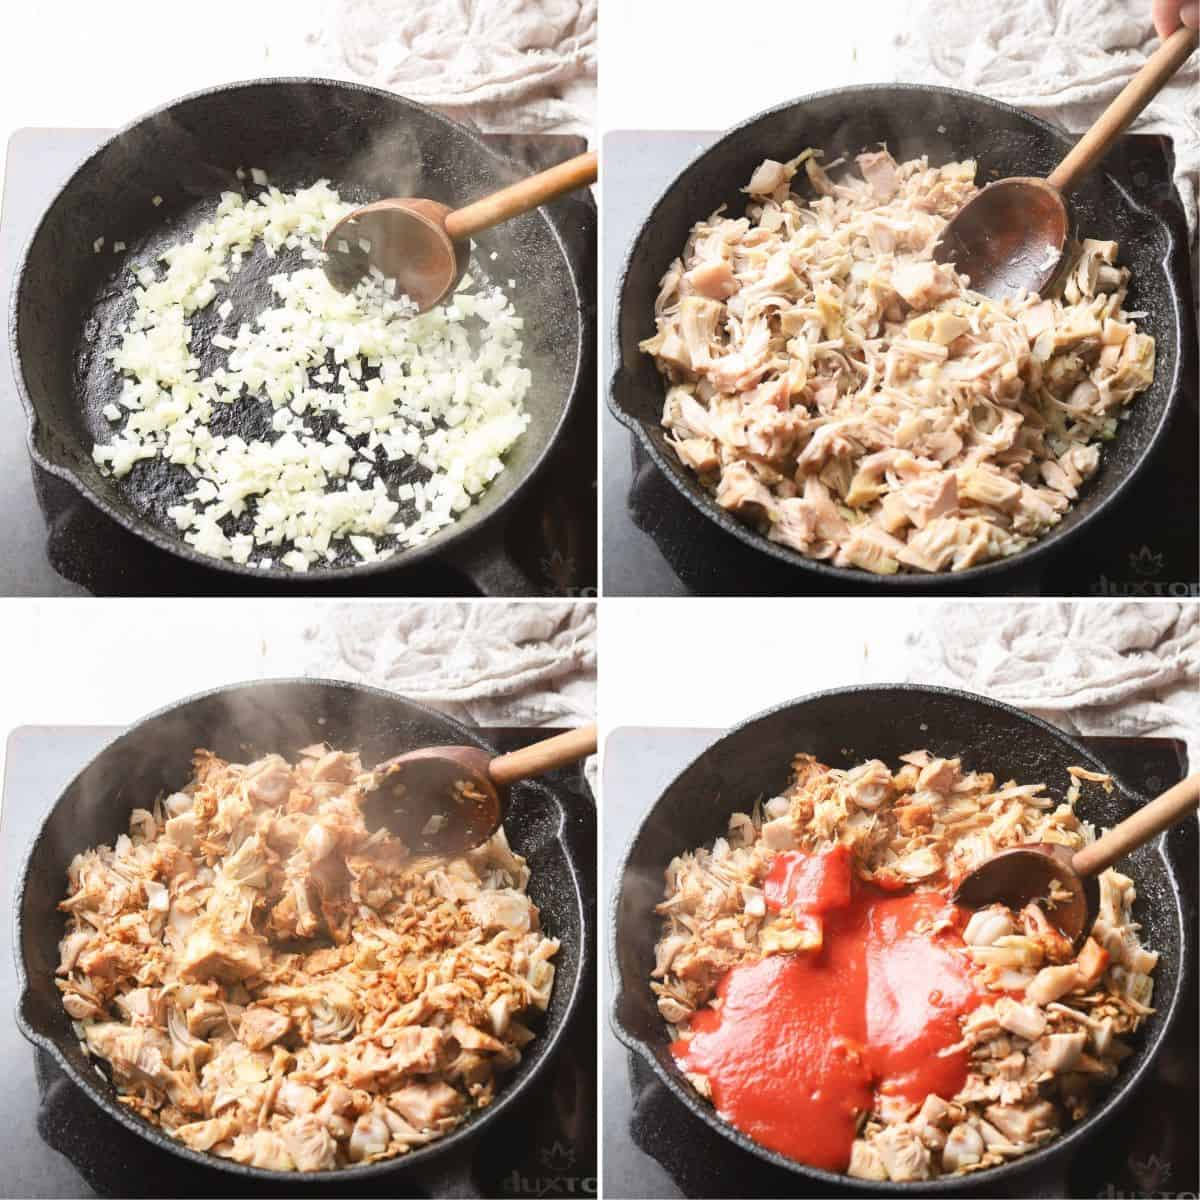 Collage Showing 4 Stages of Cooking Jackfruit Taco Filling